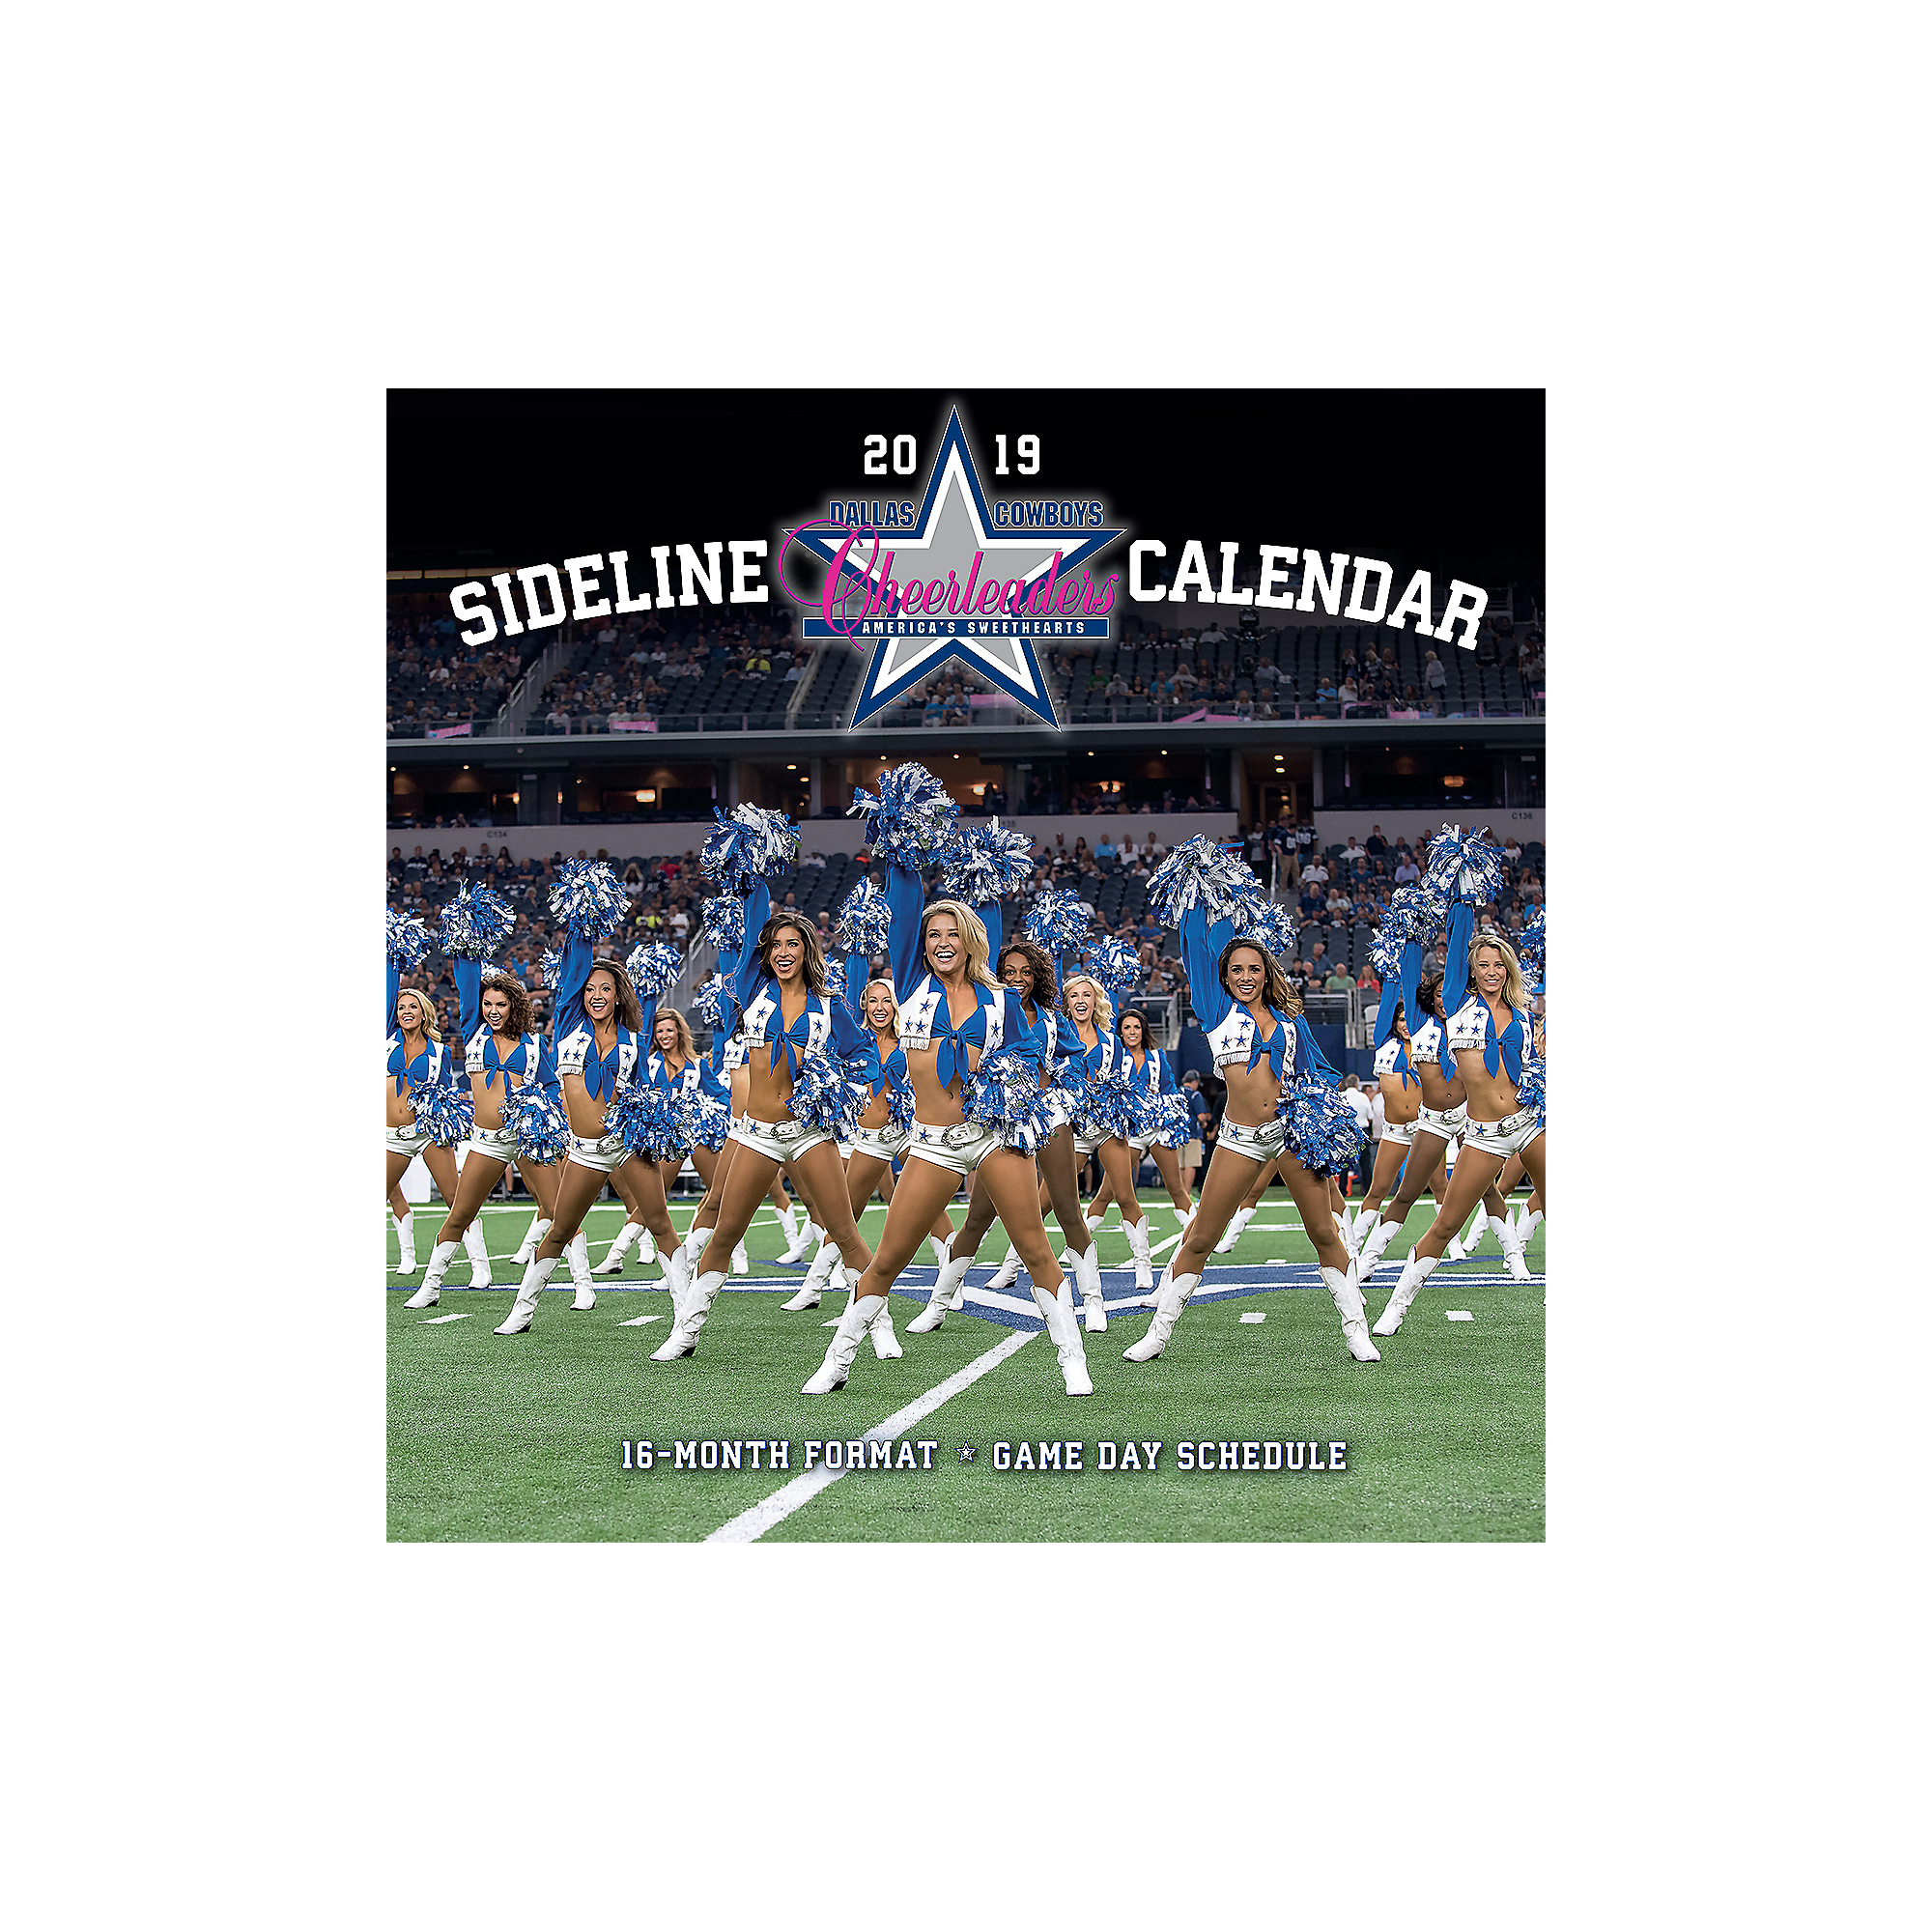 Dallas Cowboys 2019 Calendar 2019 12x12 Dallas Cowboys Cheerleaders Sideline Wall Calendar